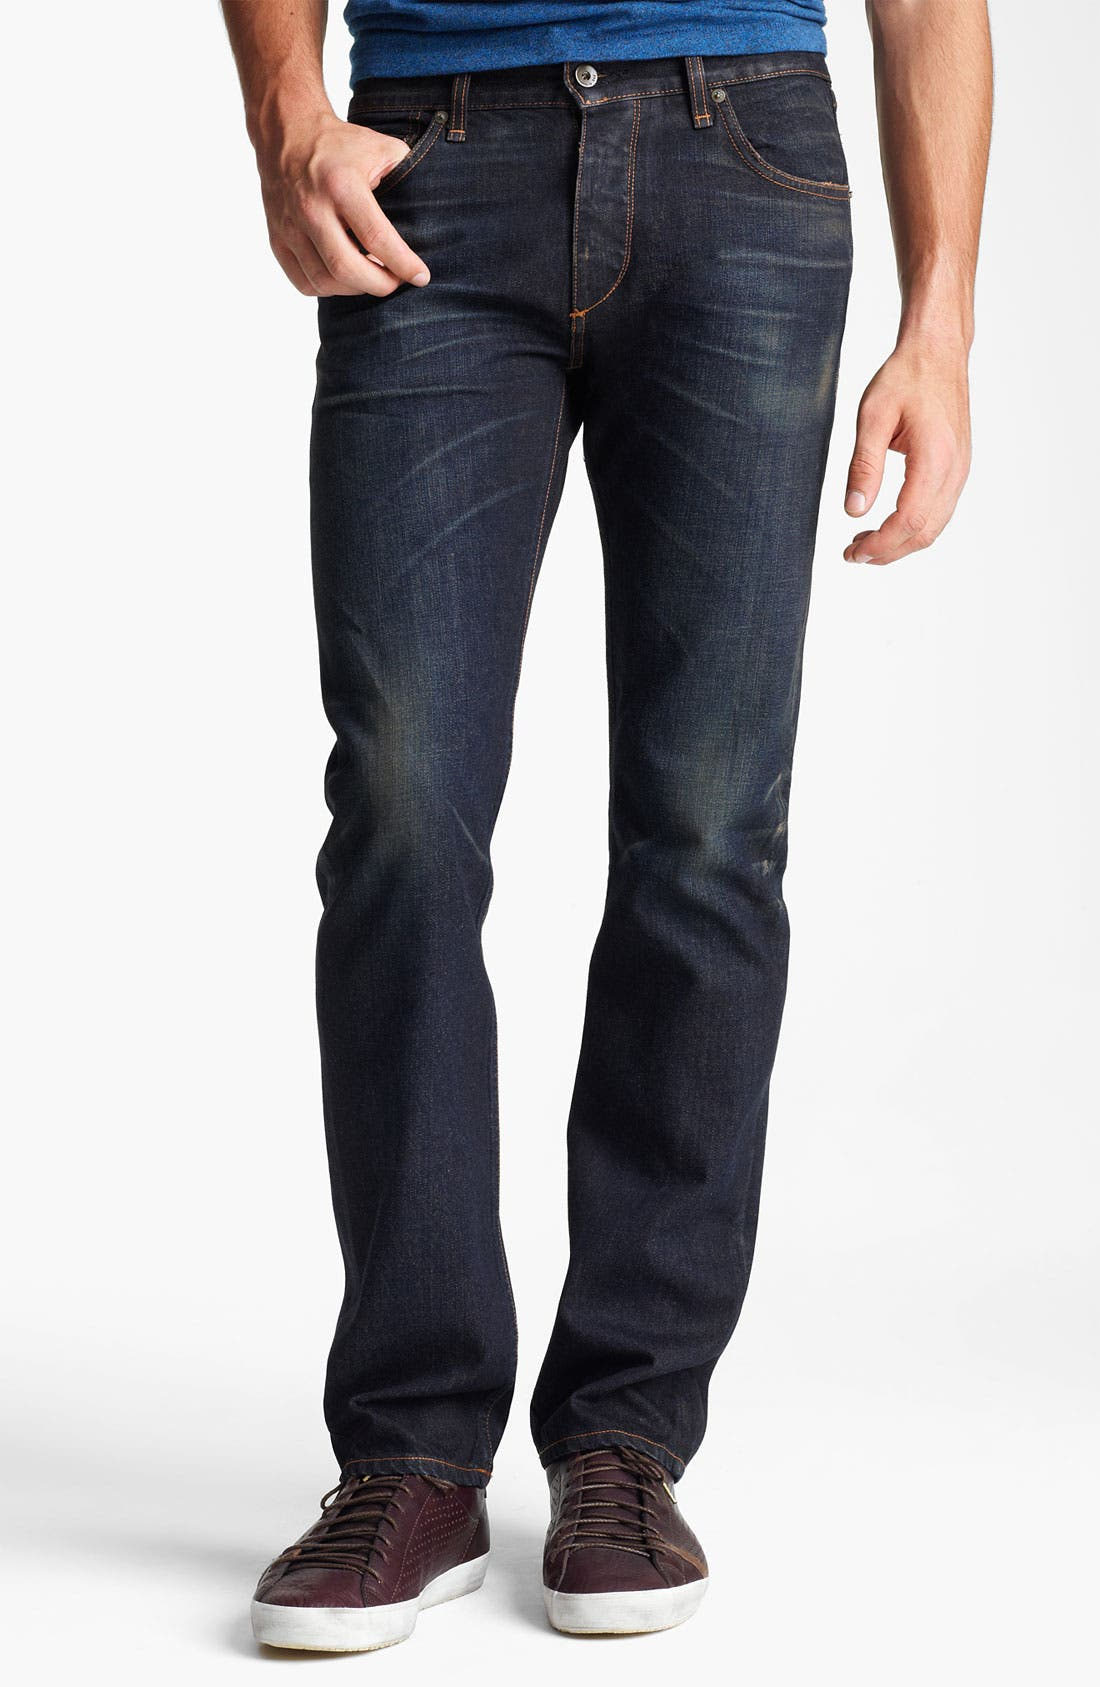 Main Image - rag & bone 'RB19X' Slim Straight Leg Jeans (Charing Blue)